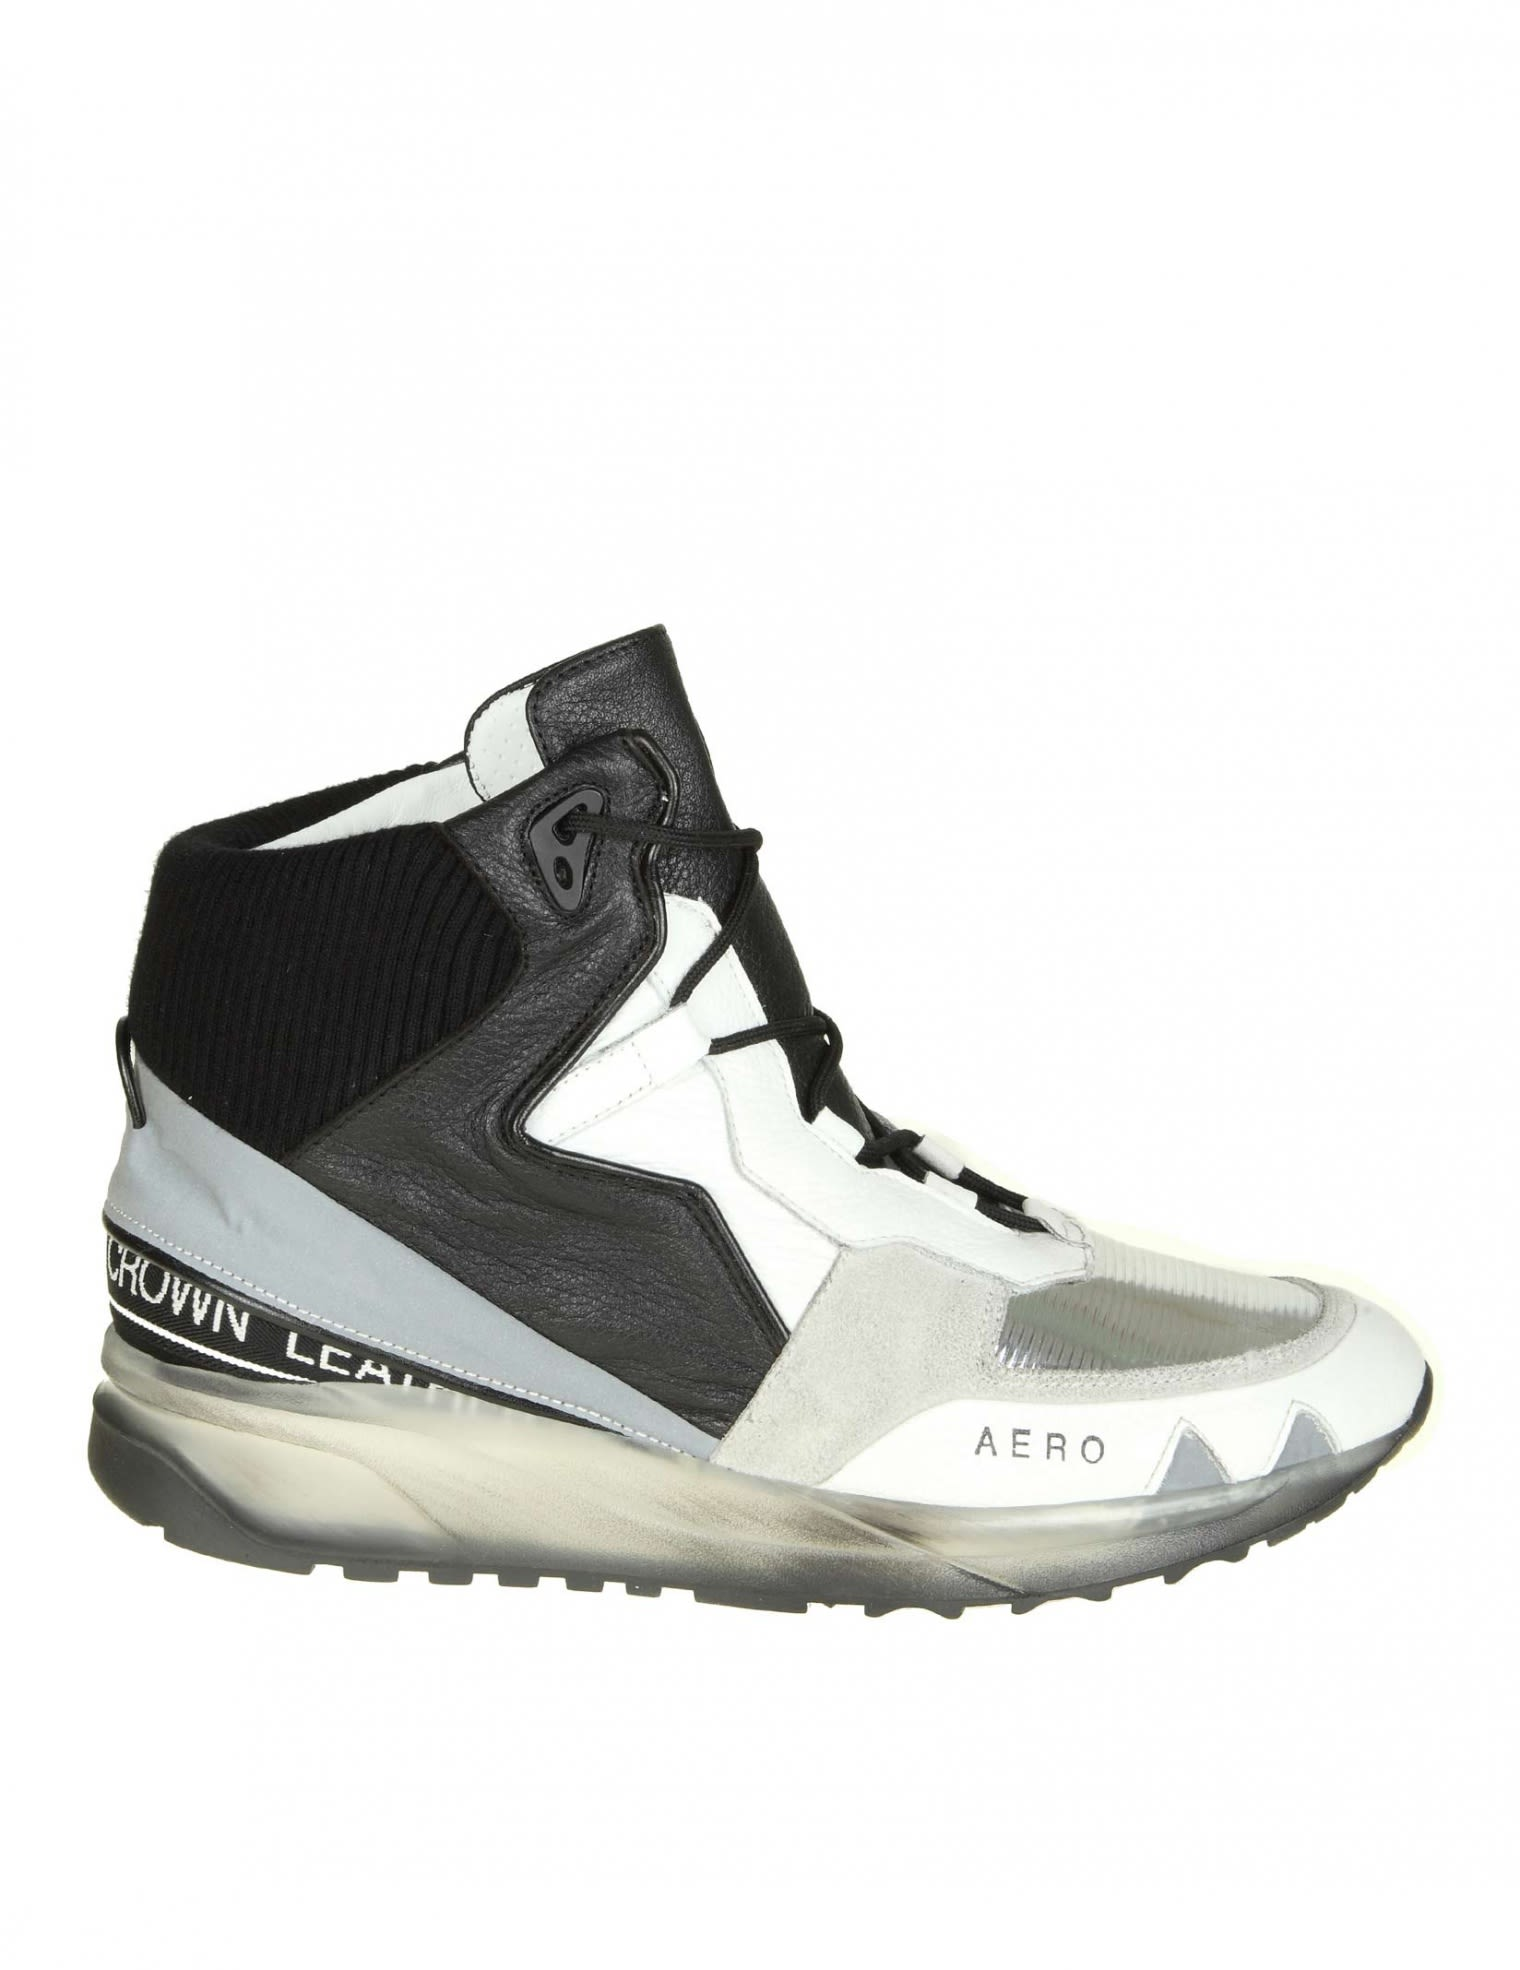 """Leather Crown Leathers """"AERO"""" SNEAKERS IN WHITE LEATHER WITH SILVER AND BLACK D"""